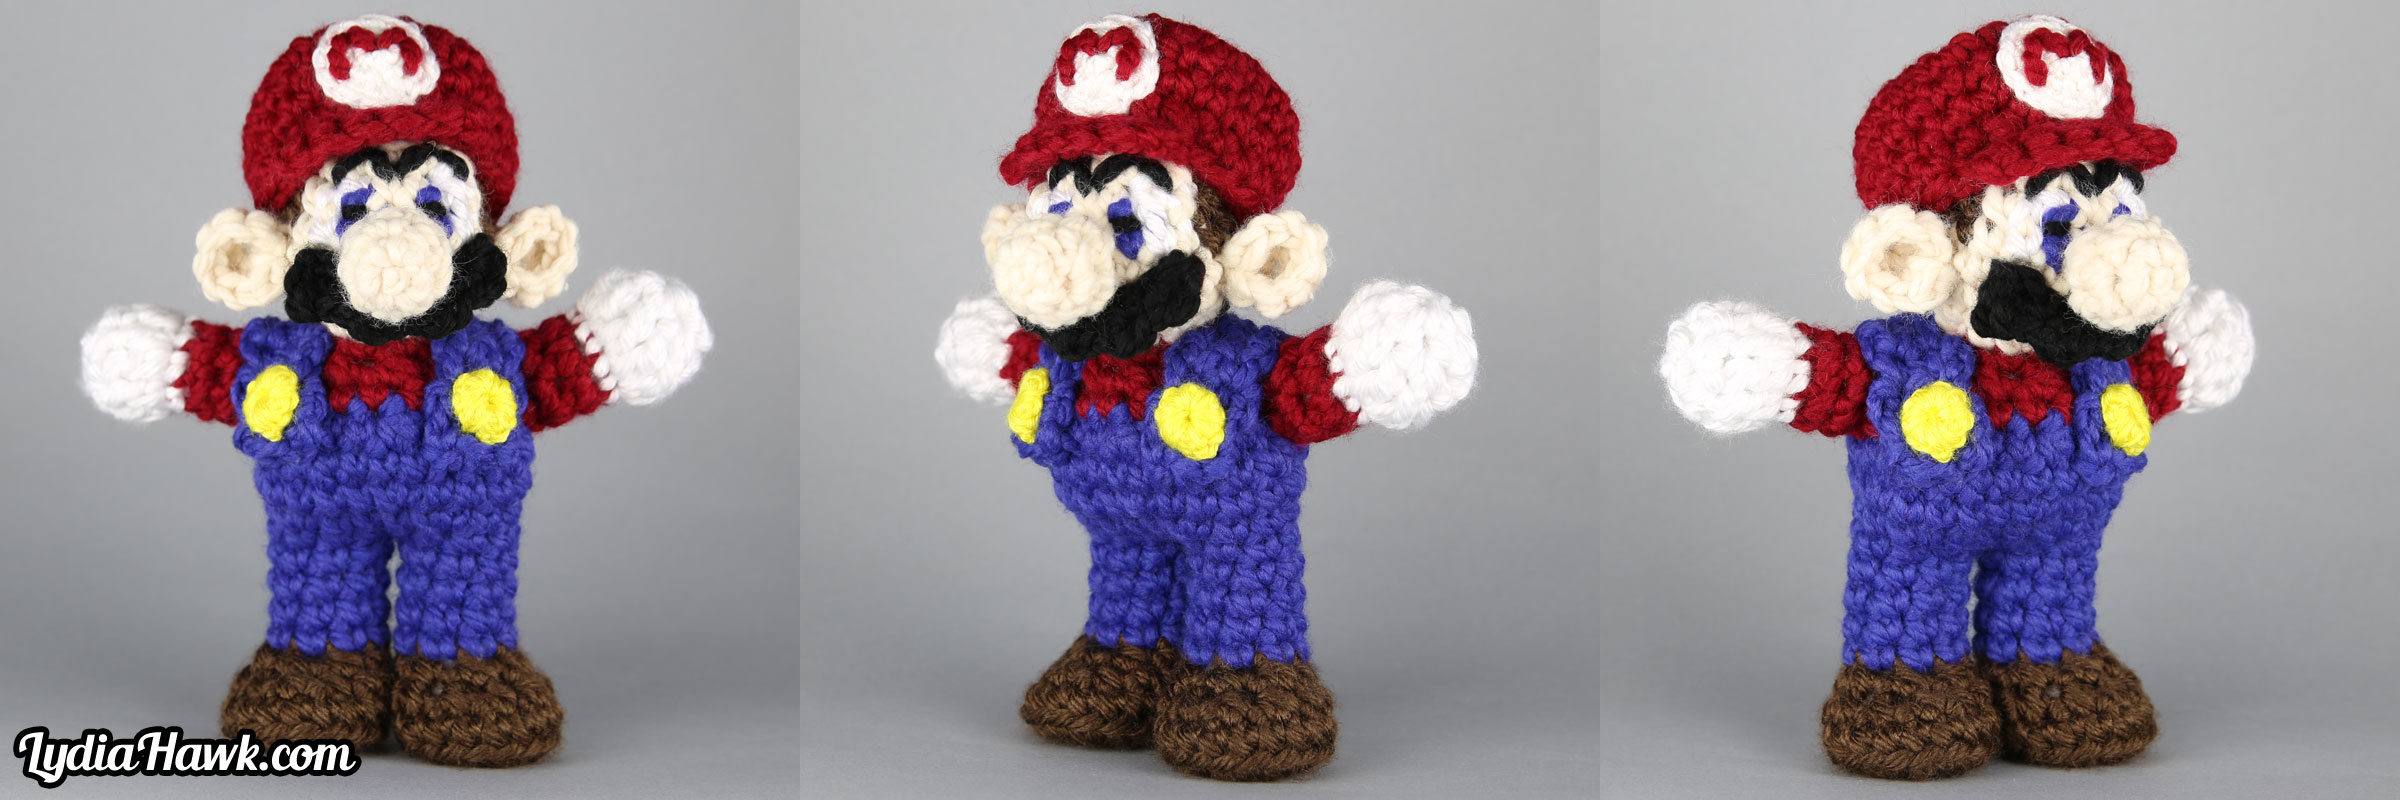 Crochet Mario Brothers Doll Lydia Hawk Designs Asheville NC